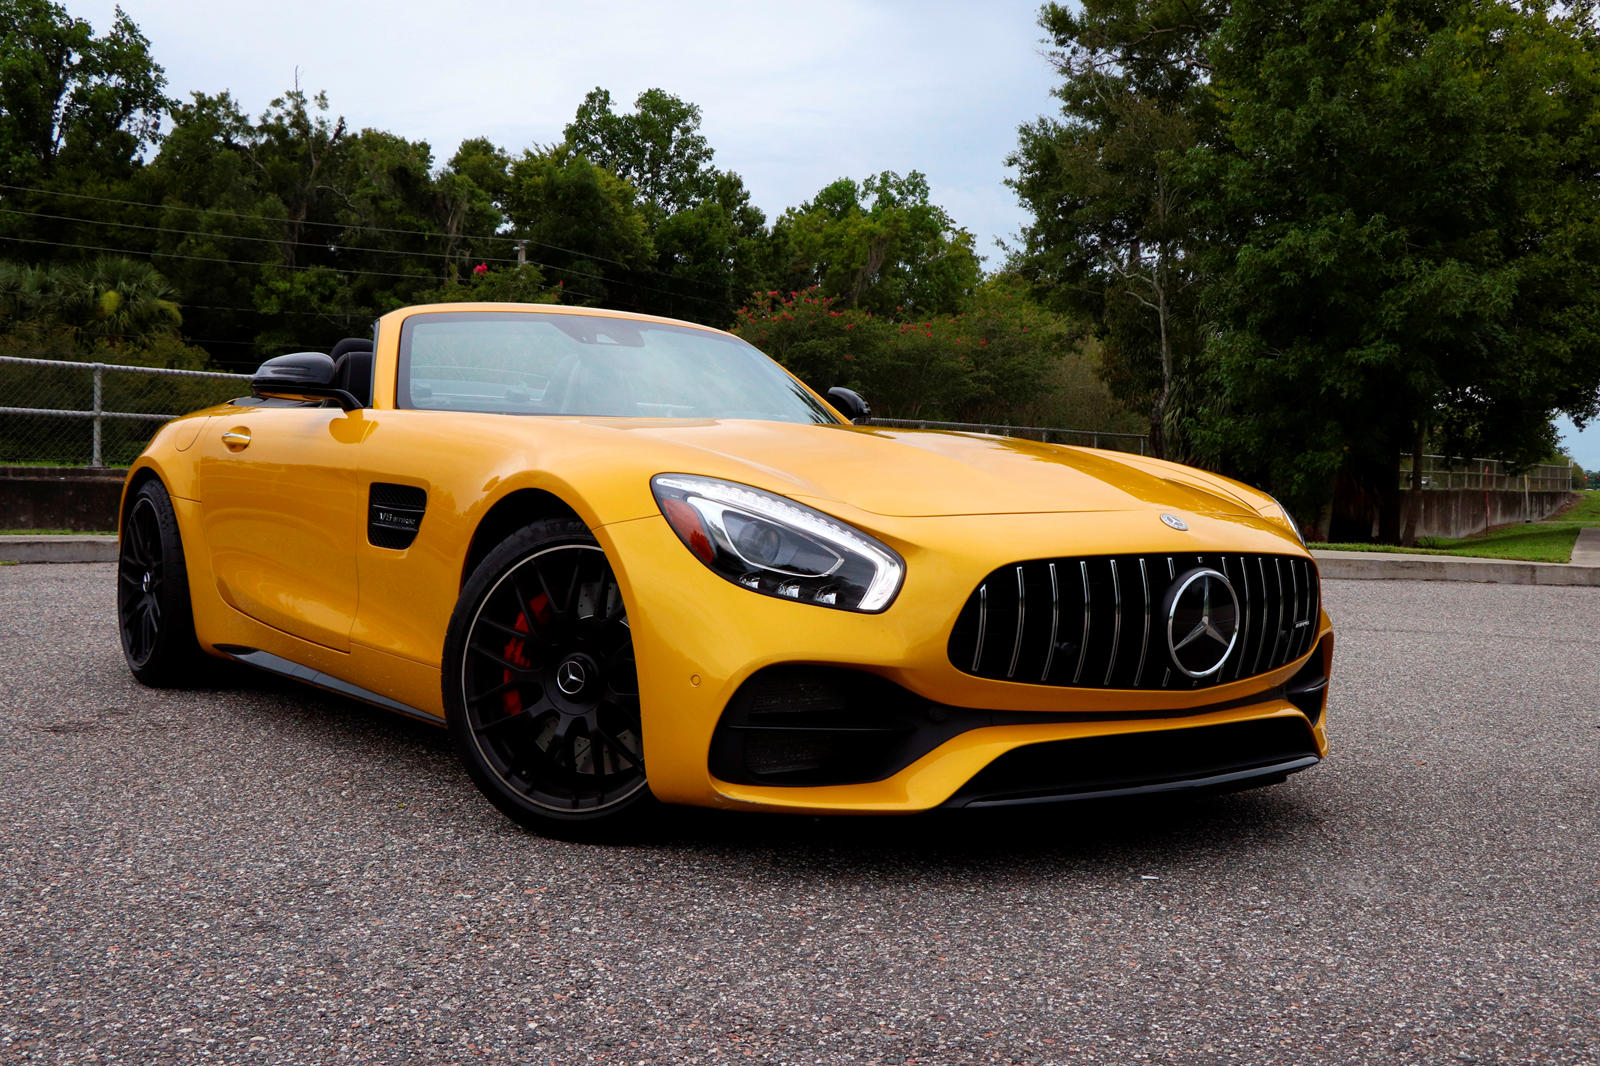 2019 Mercedes Amg Gt Roadster Review Trims Specs Price New Interior Features Exterior Design And Specifications Carbuzz